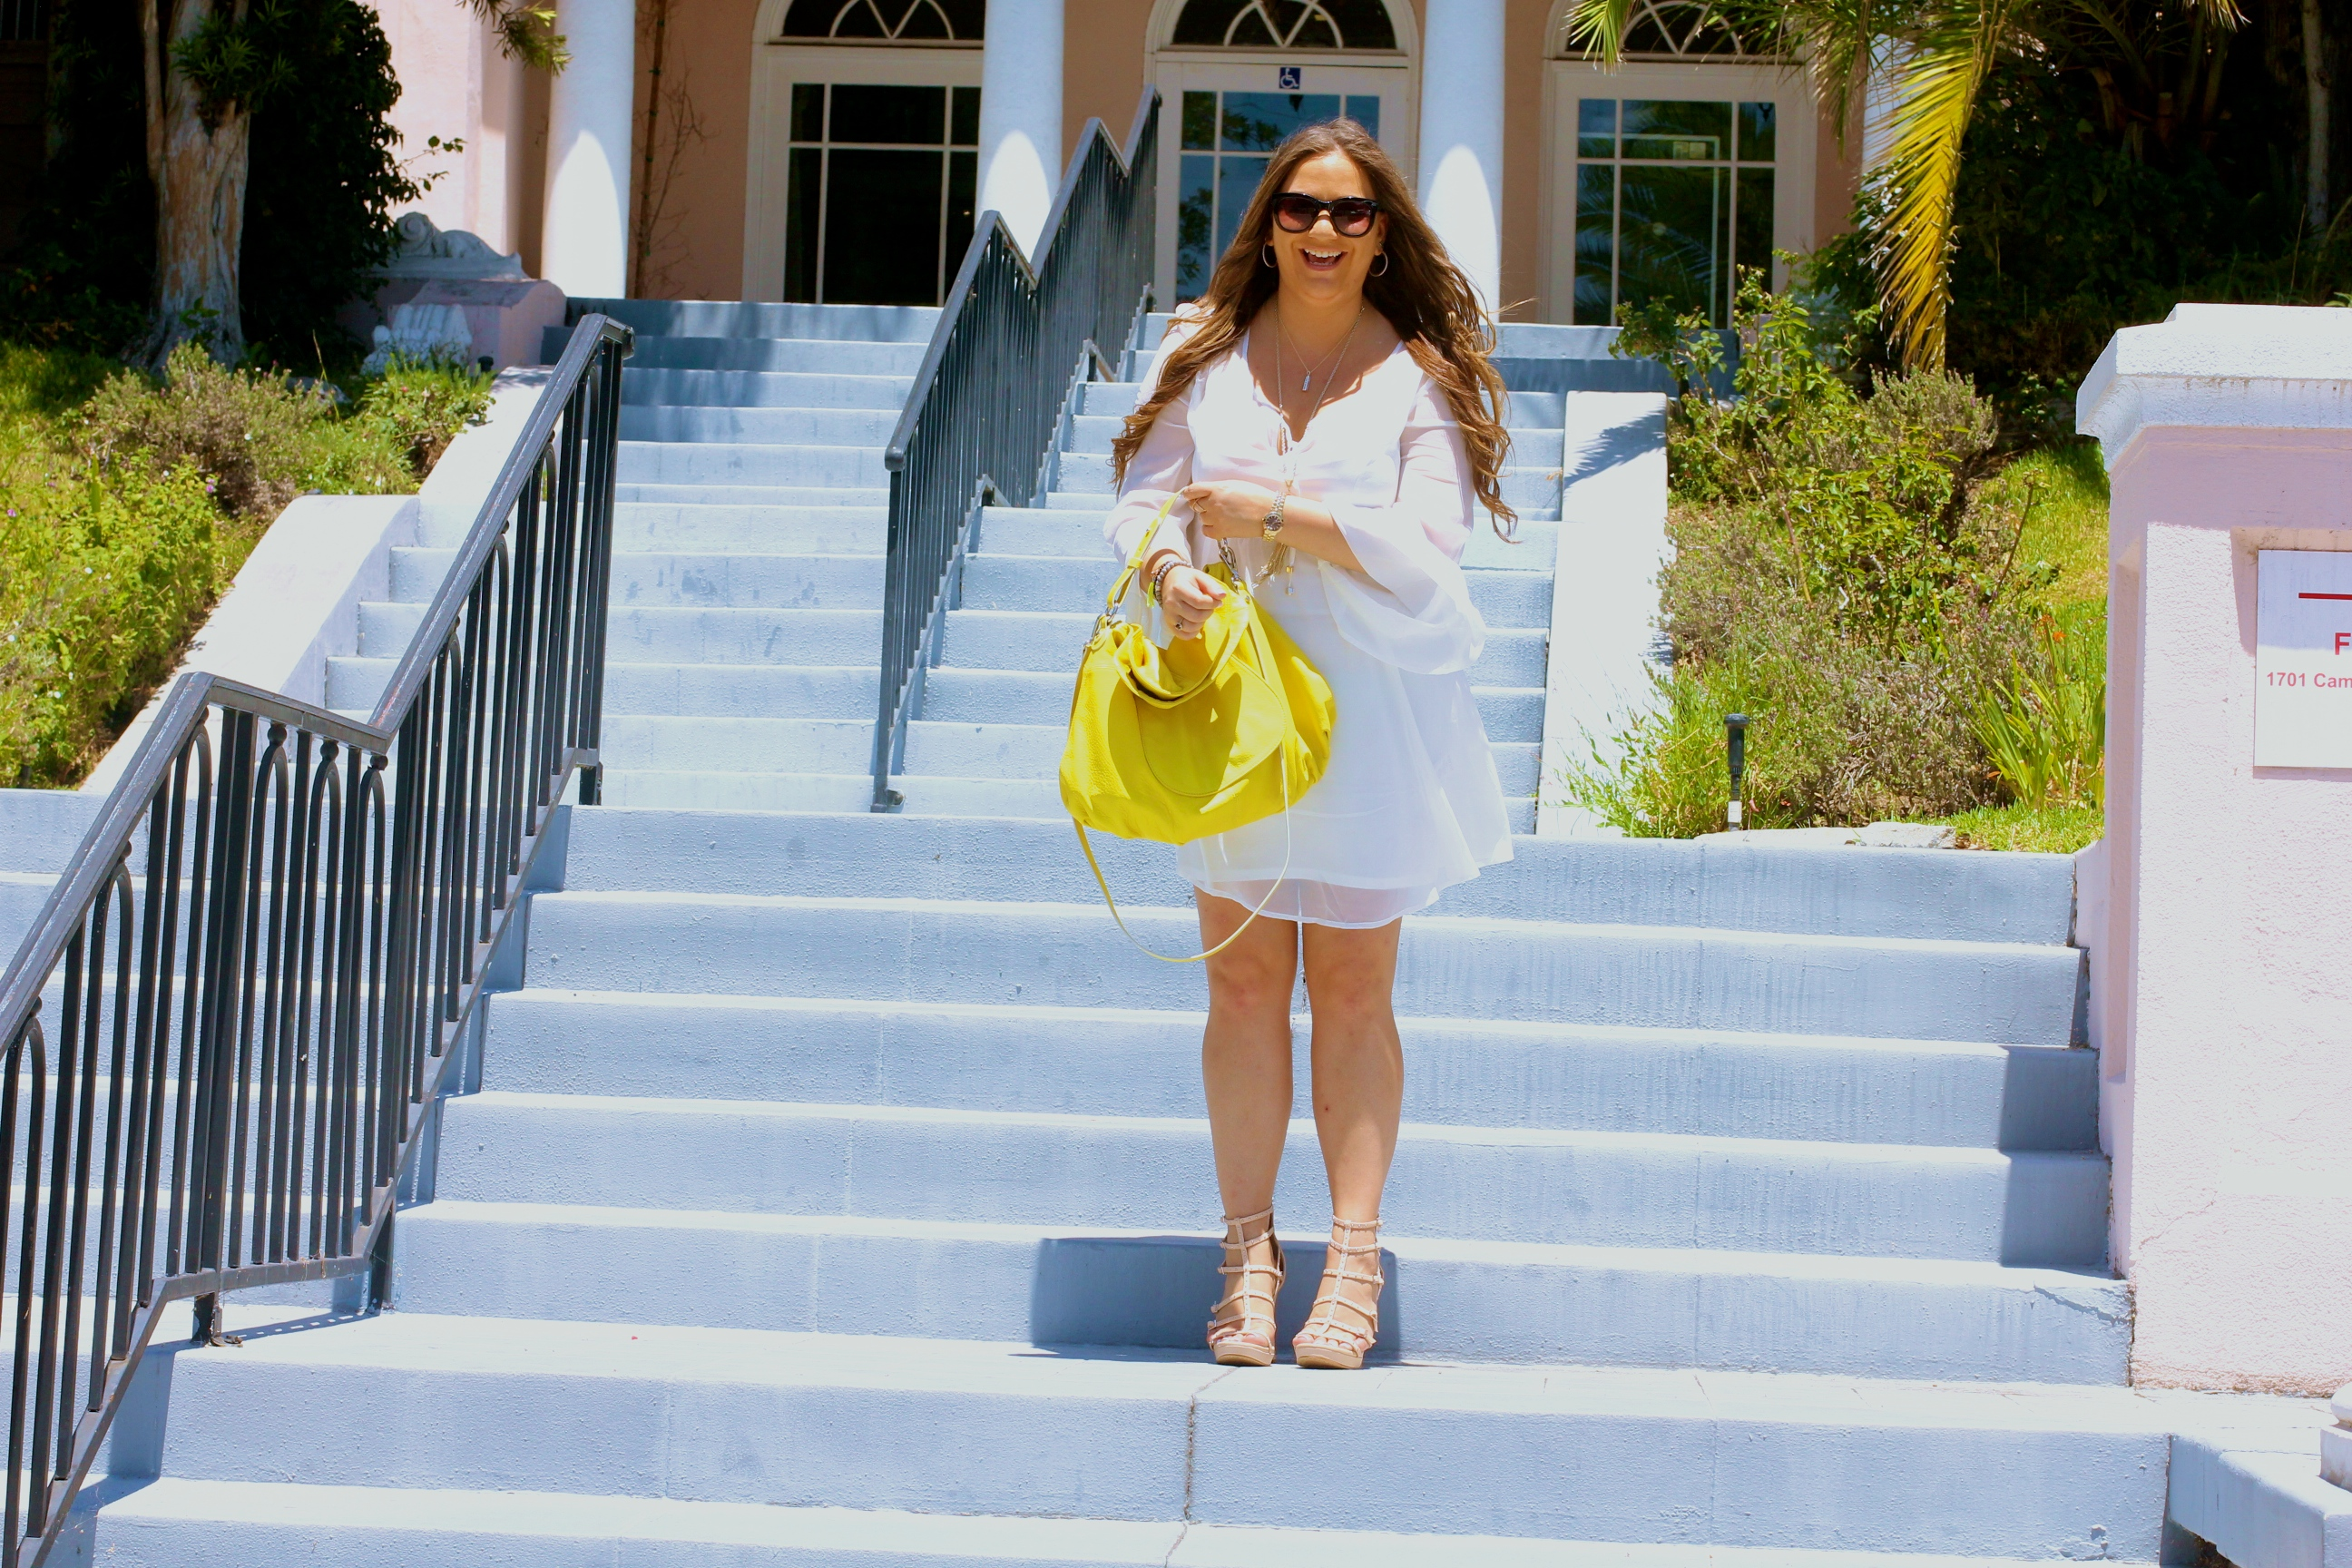 missyonmadison, melissa tierney, white chiffon dress, long sleeve white chiffon dress, white after labor day, hayden harnett, hayden harnett havana hobo 2.0, vince camuto gladiator sandals, gladiator sandals, vince camuto, yellow hobo, la blogger, fall style, how to wear white in fall, blog outtakes, silly moments,